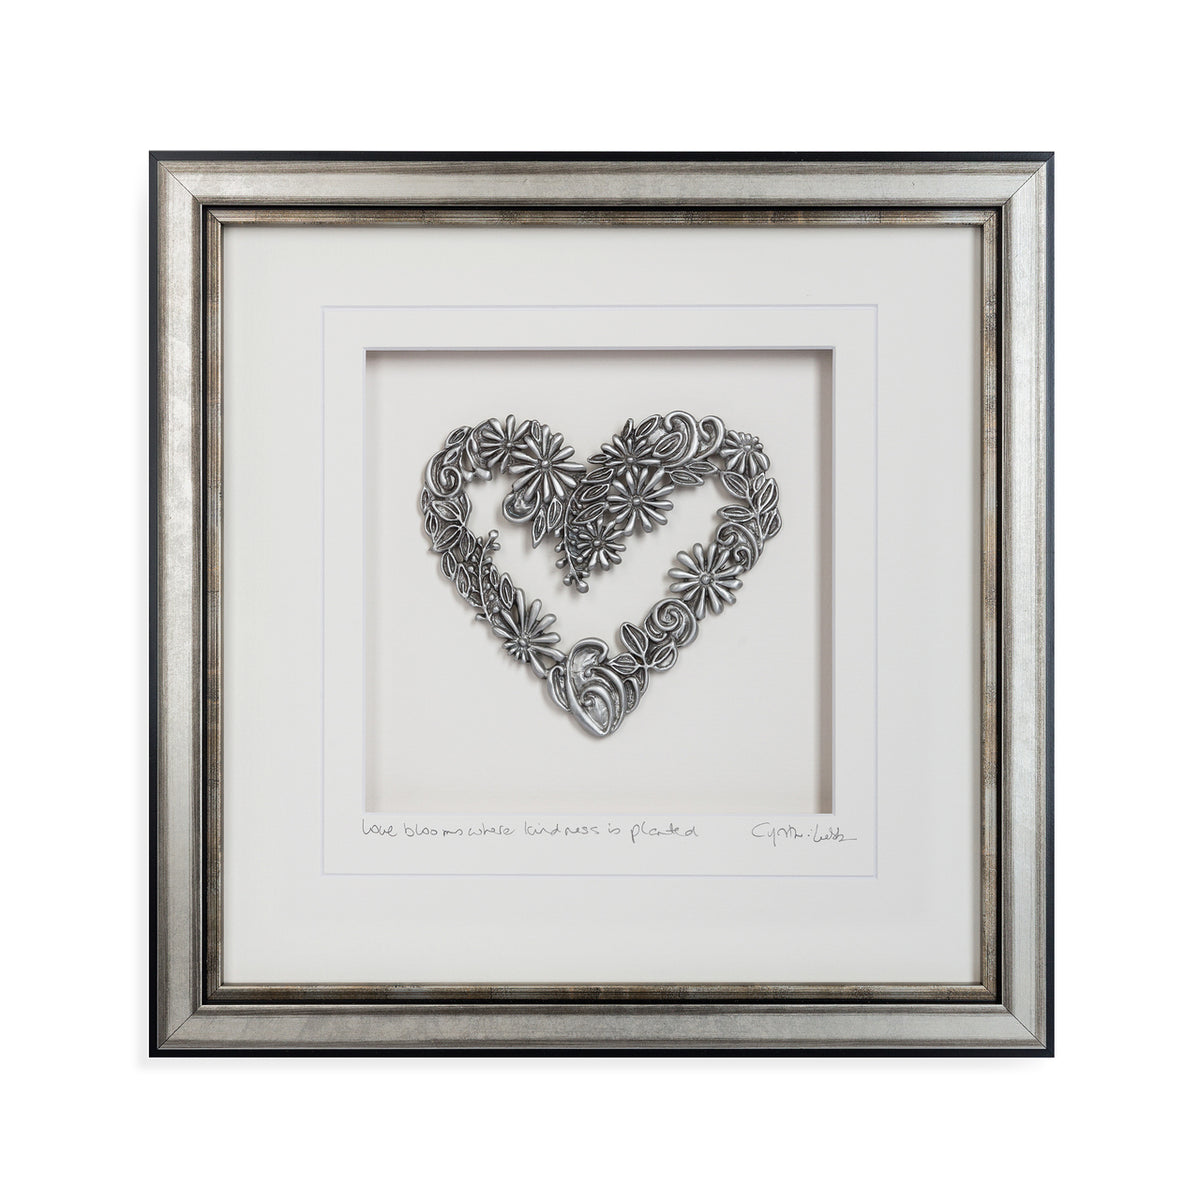 Flower Heart Framed Wall Art - Heart of the Home PA